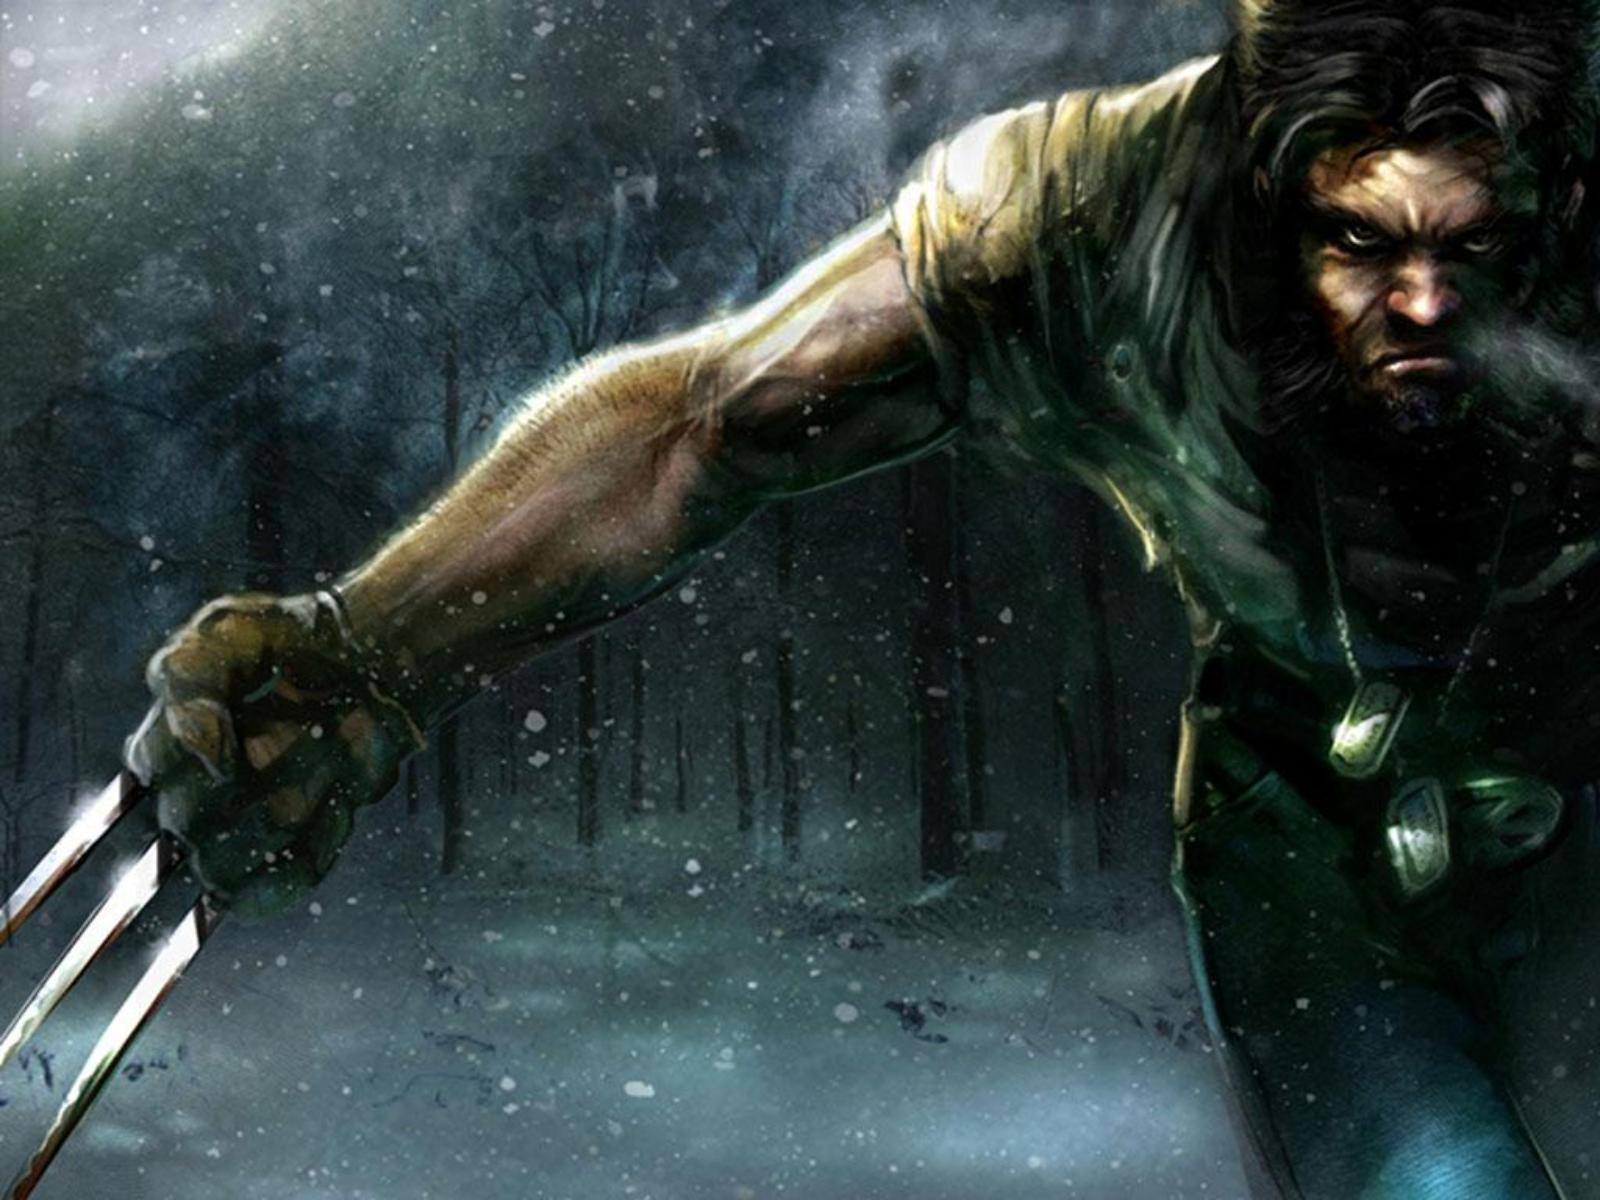 X Men Images Wolverine HD Wallpaper And Background Photos 24196443